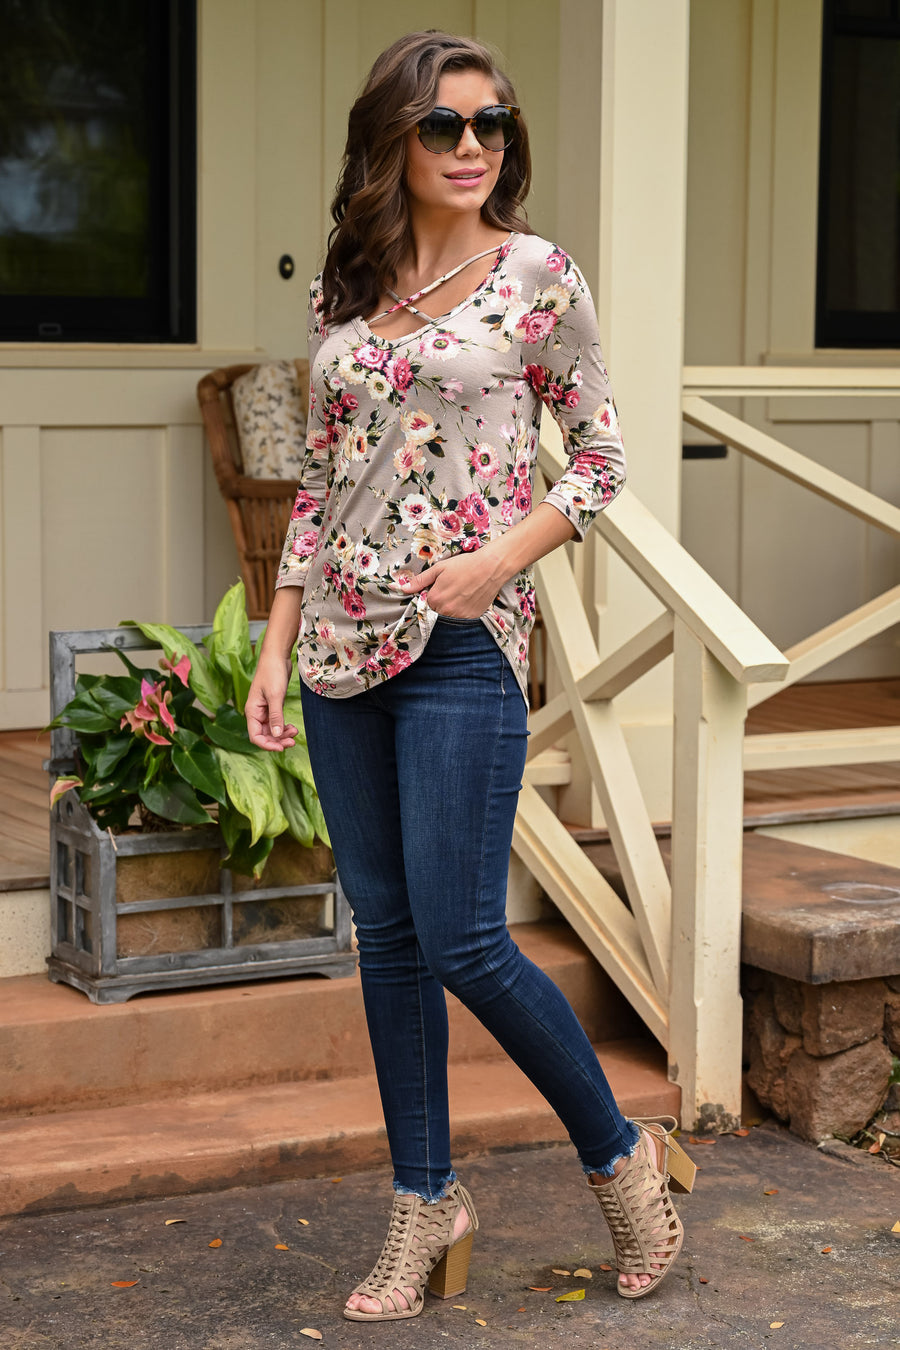 Nice To See You Floral Top - Taupe women's 3/4 sleeve top with criss-cross neckline, Closet Candy Boutique 3